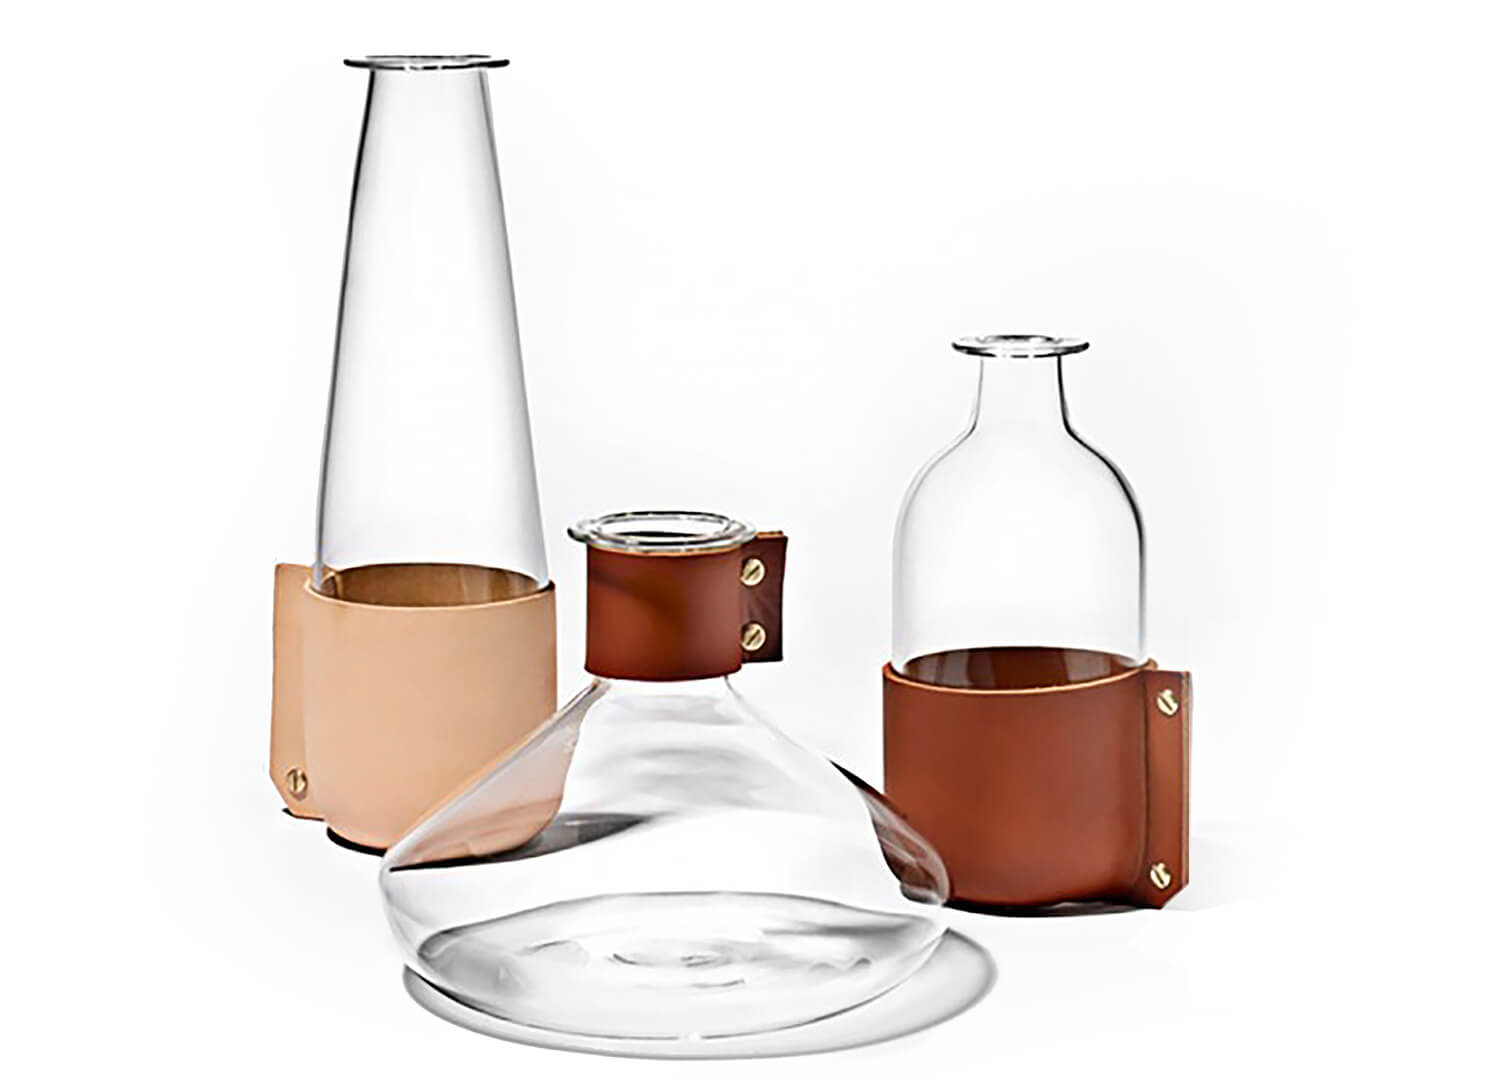 Est Living Strapped Design Covet Simon Hasan Wrap Glassware 1024x544